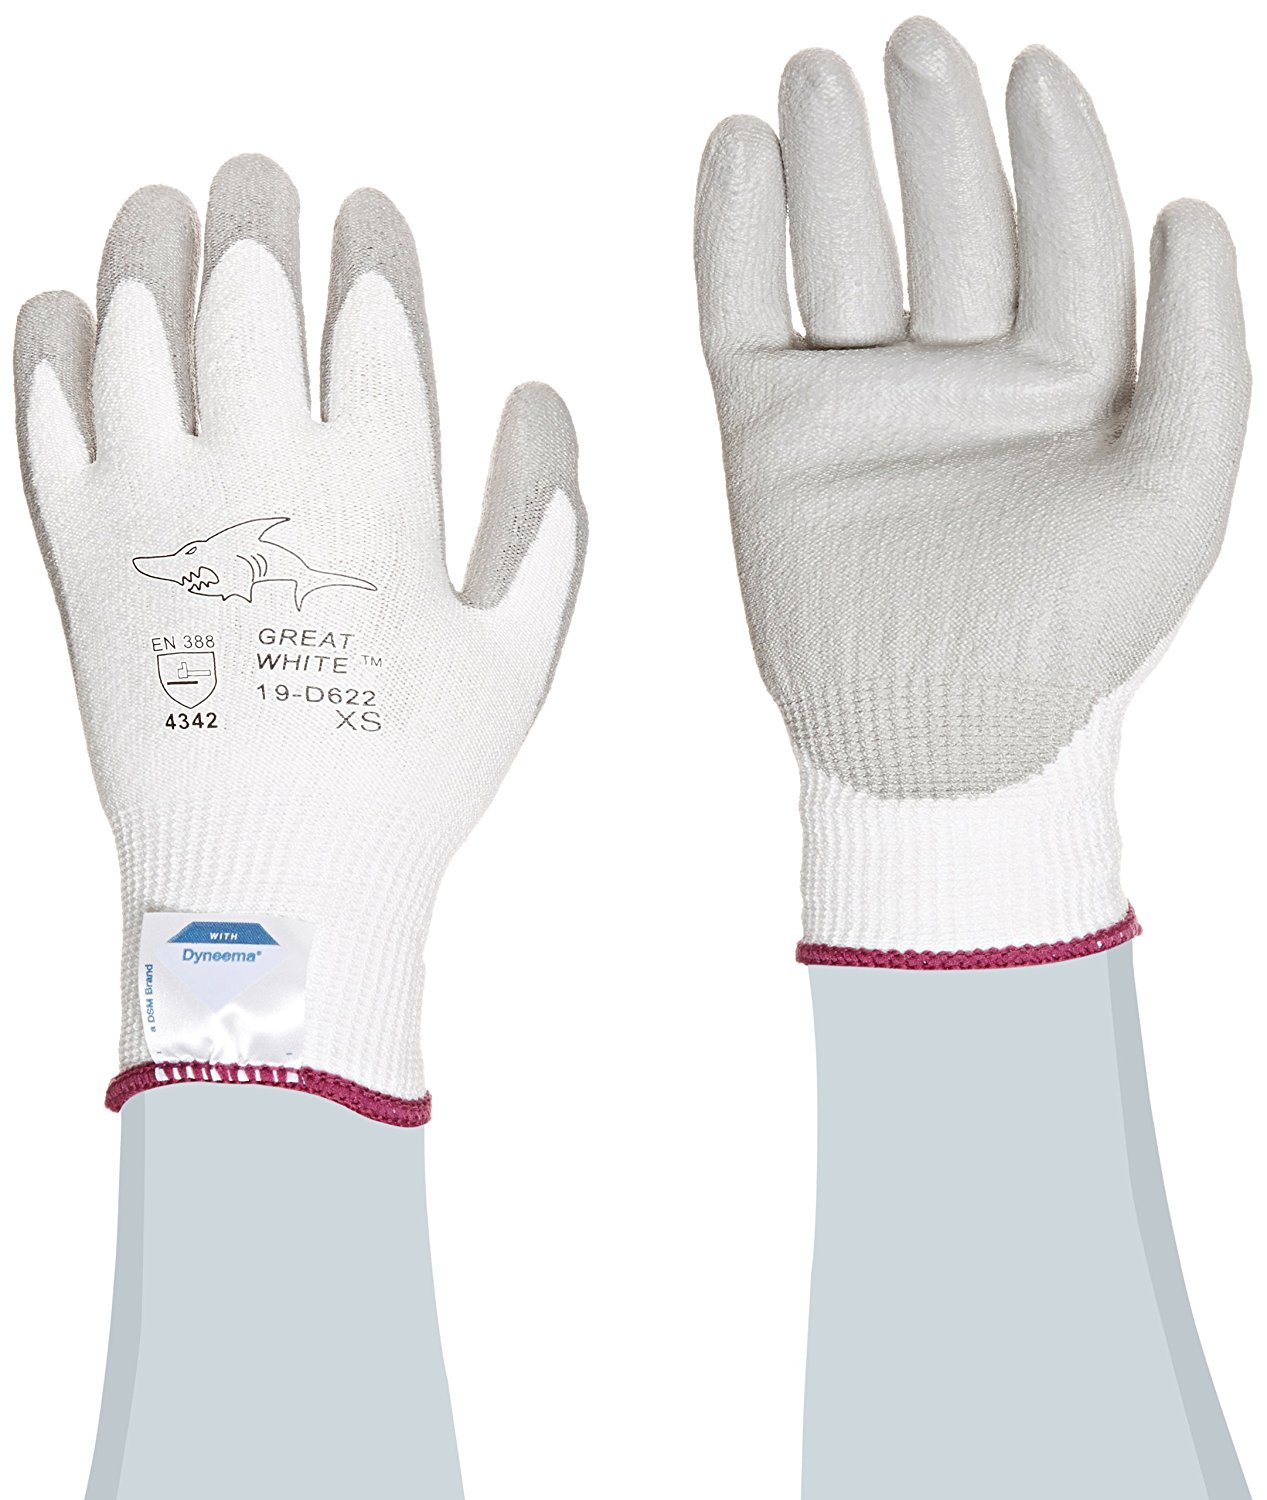 Great White 19-D622/XS 13-Gauge Dyneema/Lycra Cut Resistant Gloves with Polyurethane Coated Palm and Fingers, White/Gray, X-Small, 1-Dozen